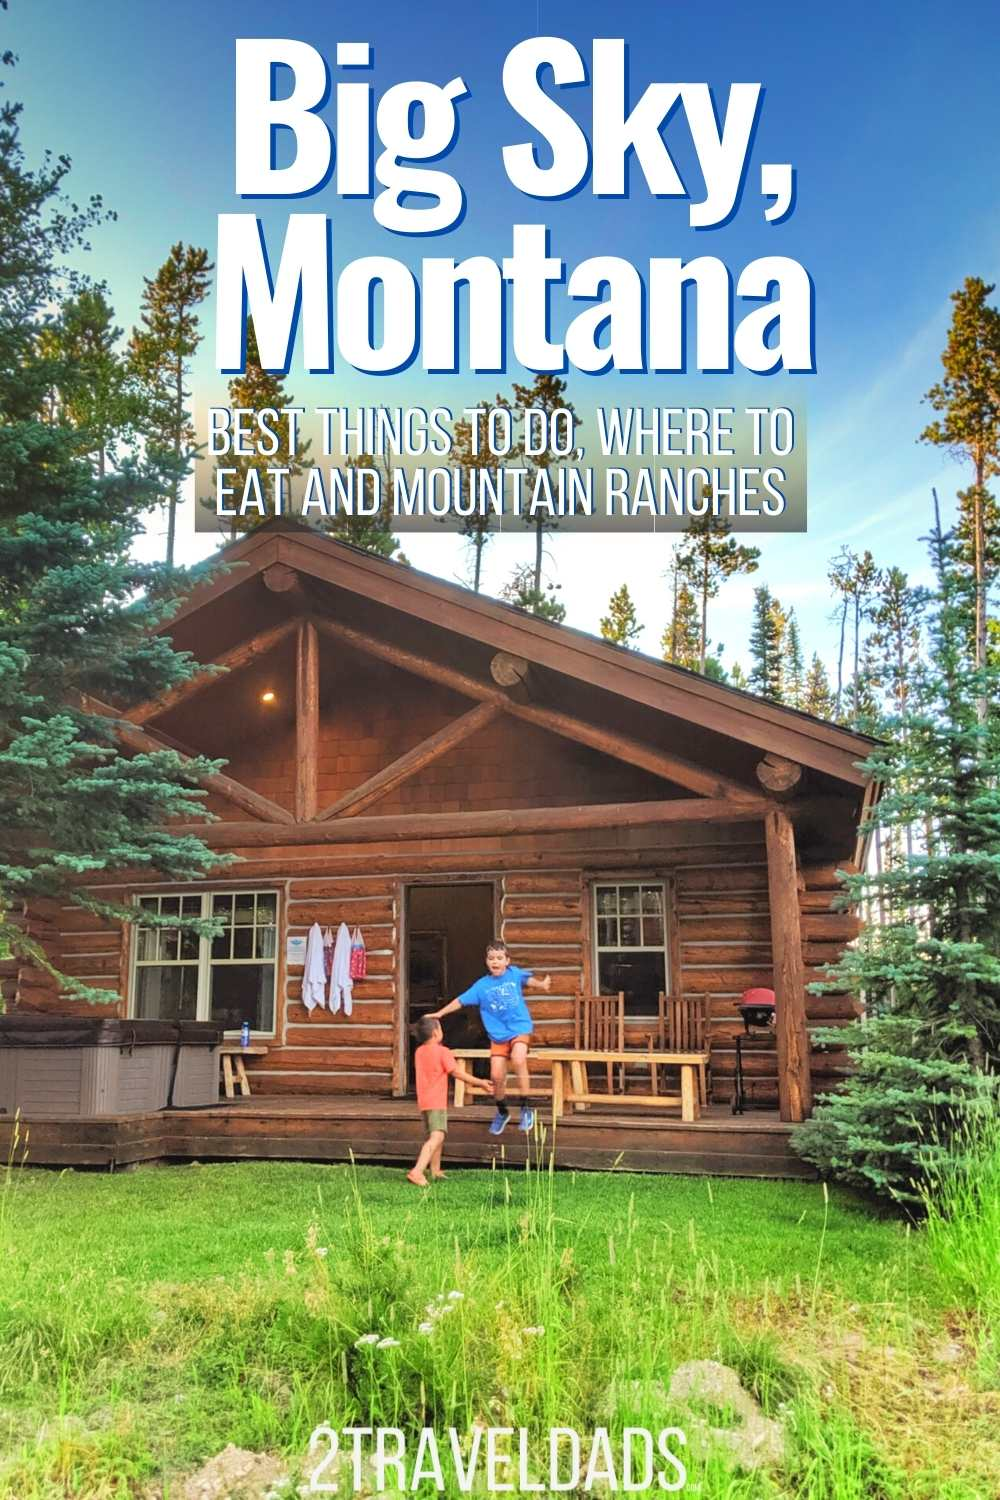 Big Sky Montana is full of things to do besides skiing. Summer weather is great for visiting Yellowstone, hiking trails to waterfalls, horseback riding, the best BBQ in Montana and more. Very nice resorts and lodging.